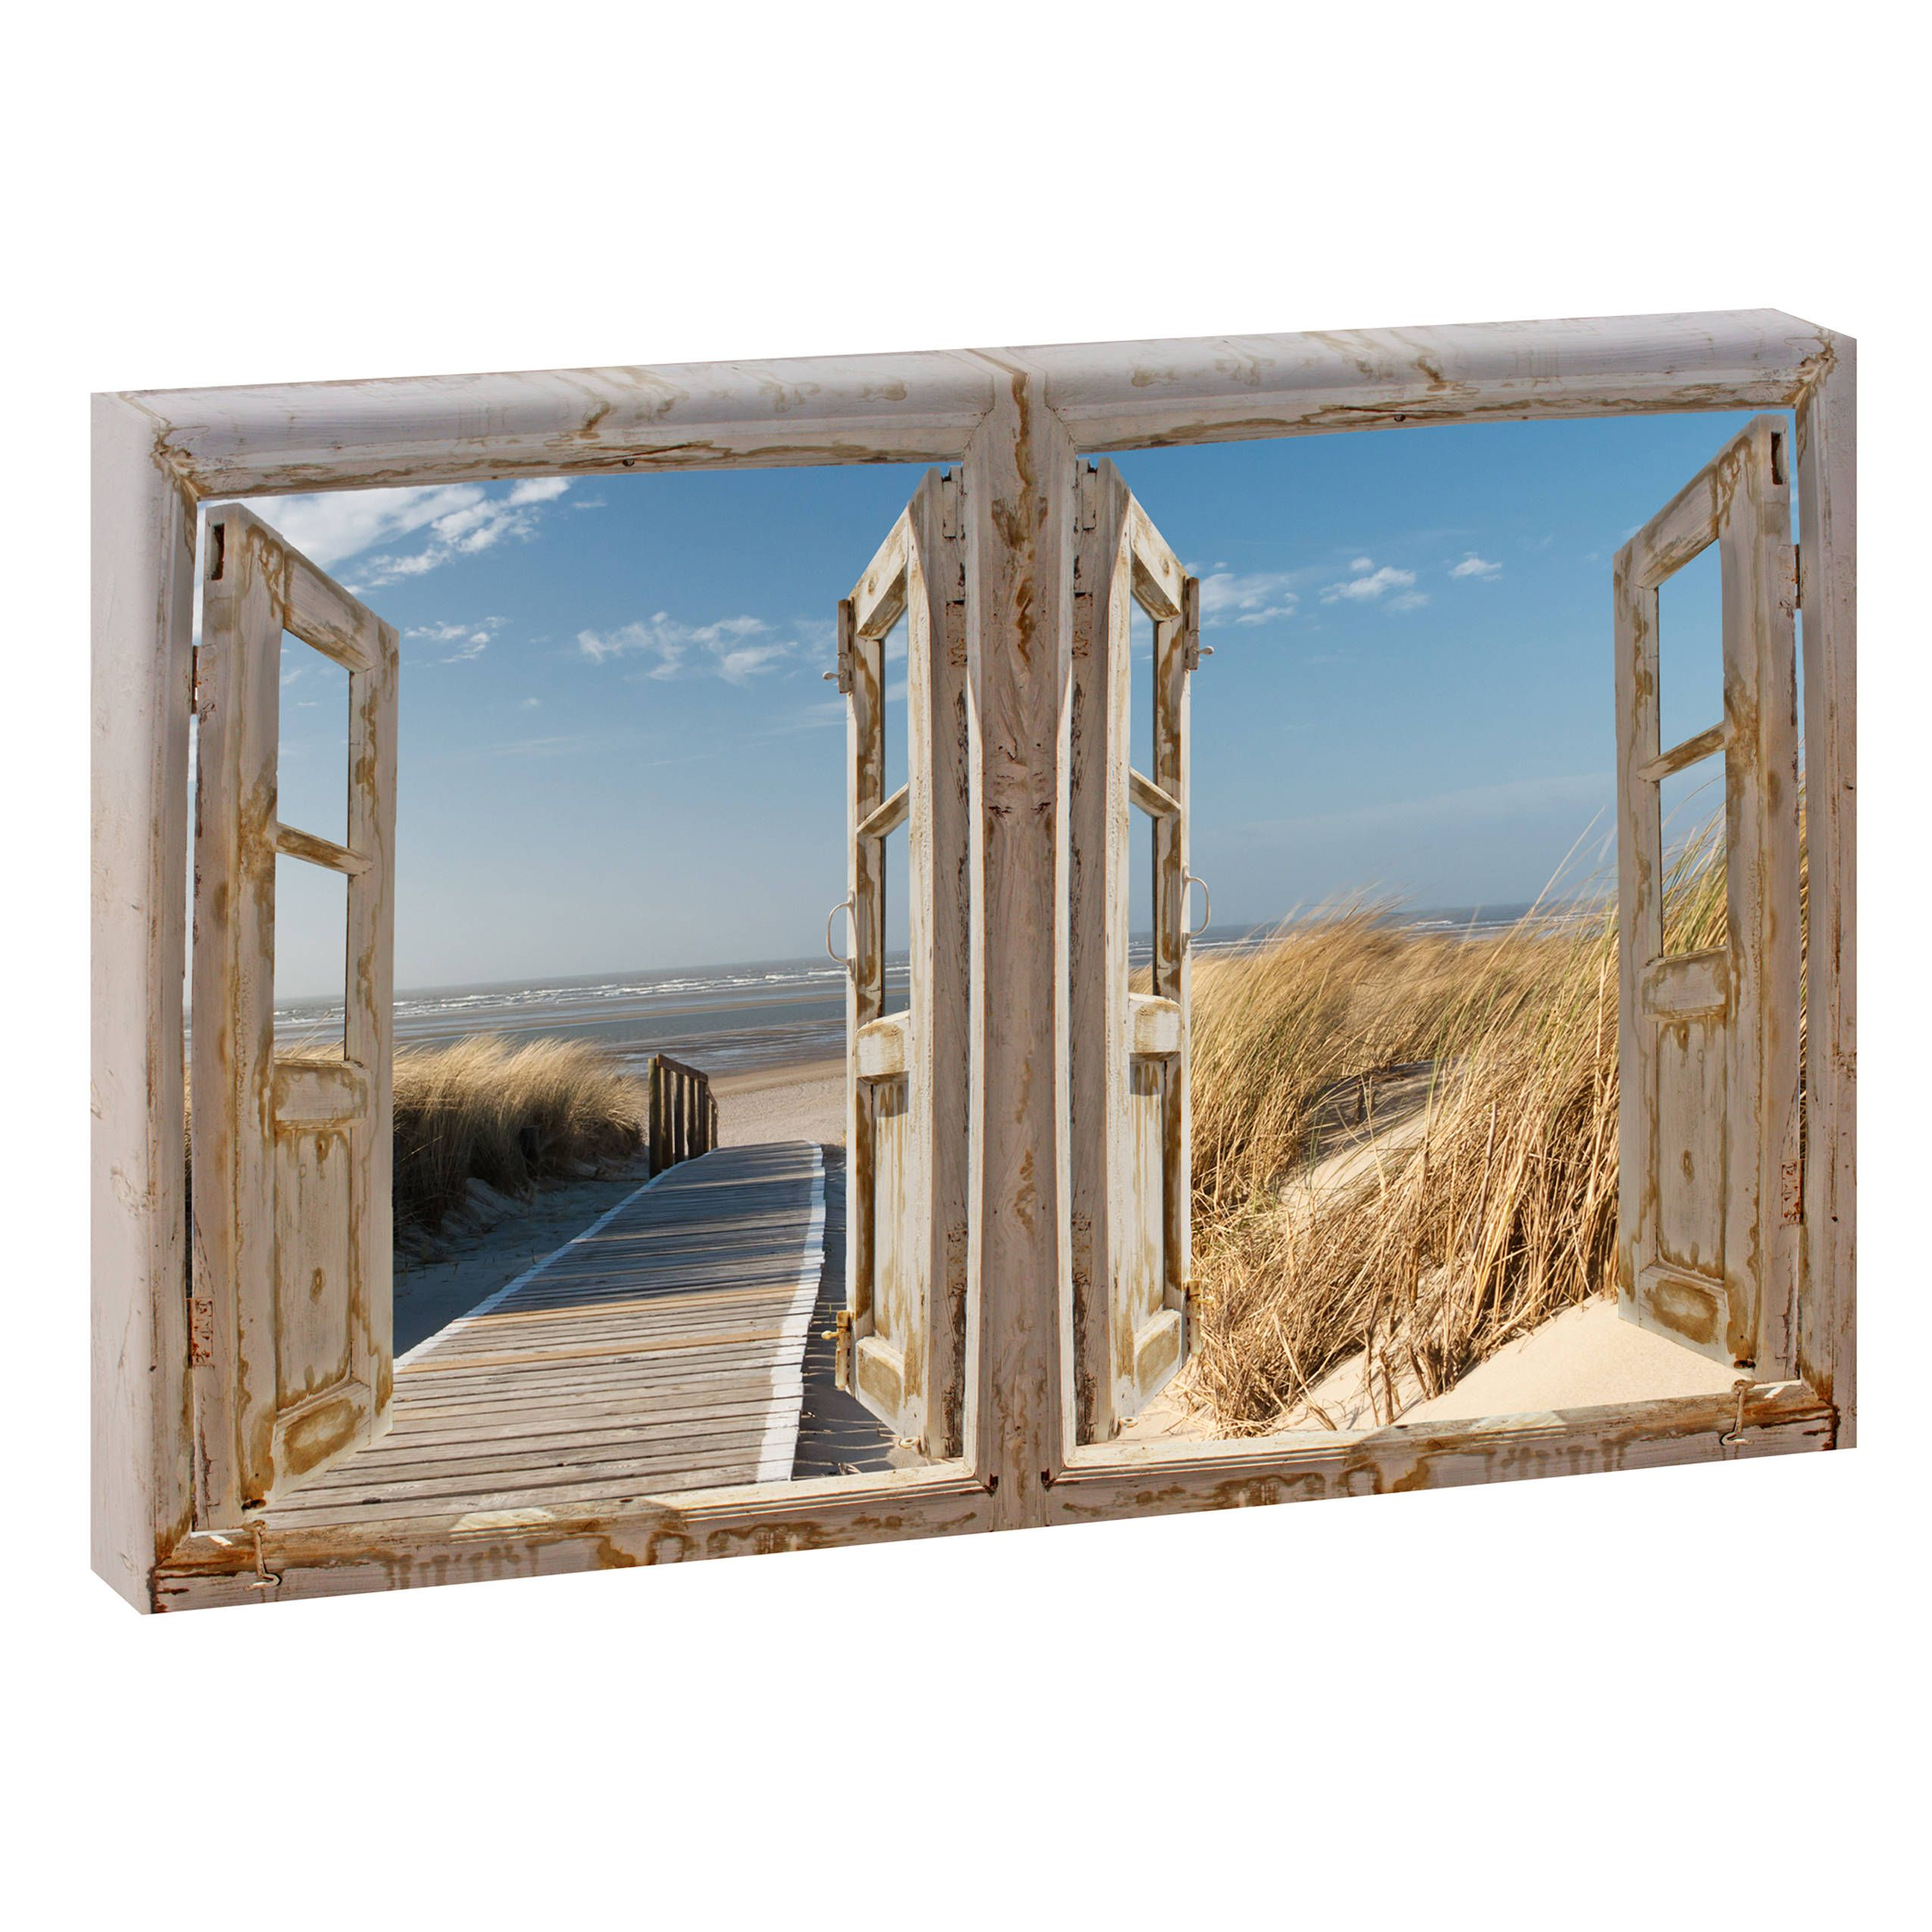 Strandbilder Auf Leinwand Picture Of The Beach Beach Sea Wedge Frame Canvas Poster Mural